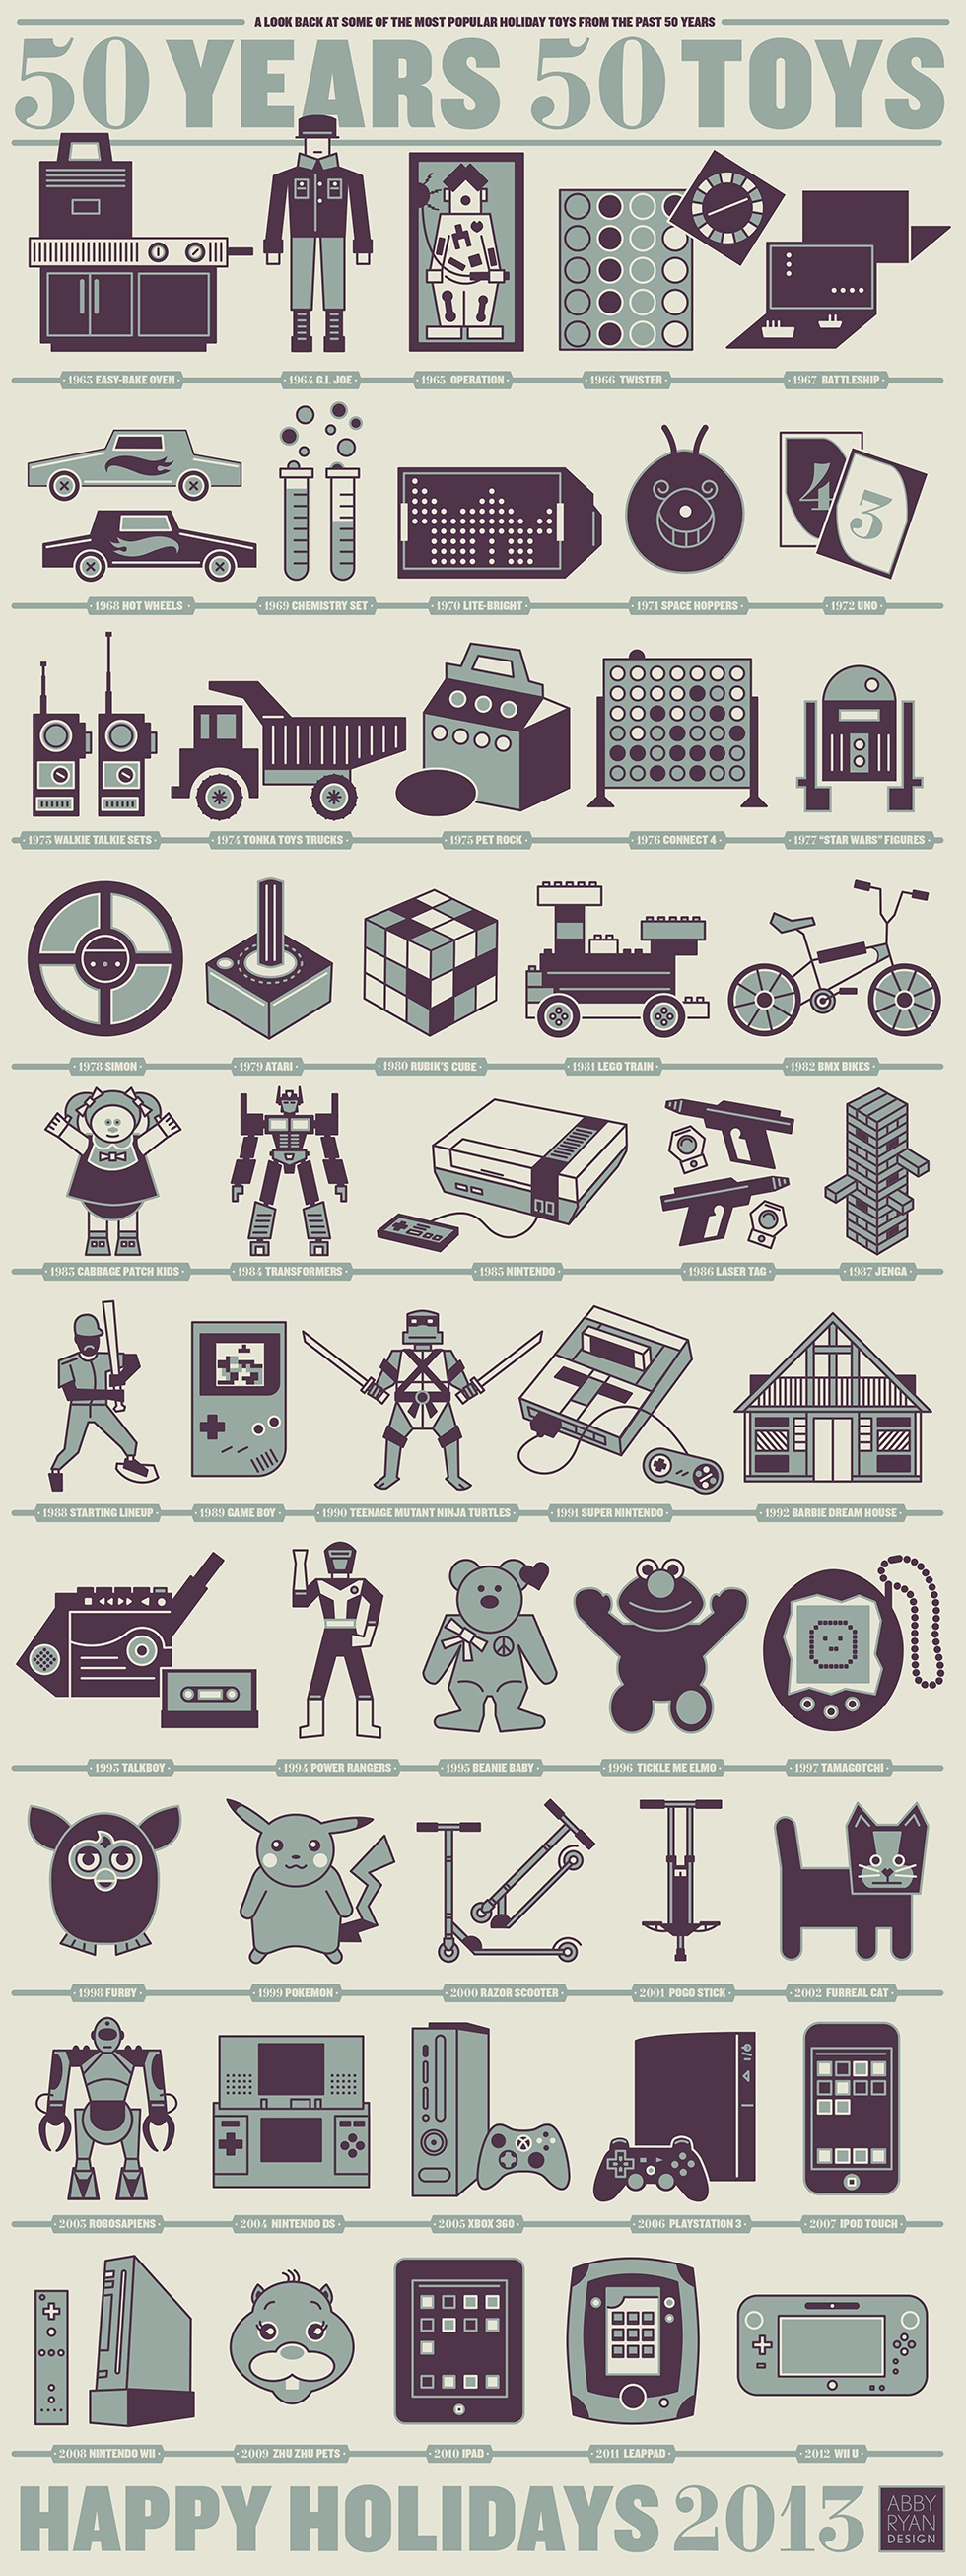 Most popular toys of the past 50 years infographic